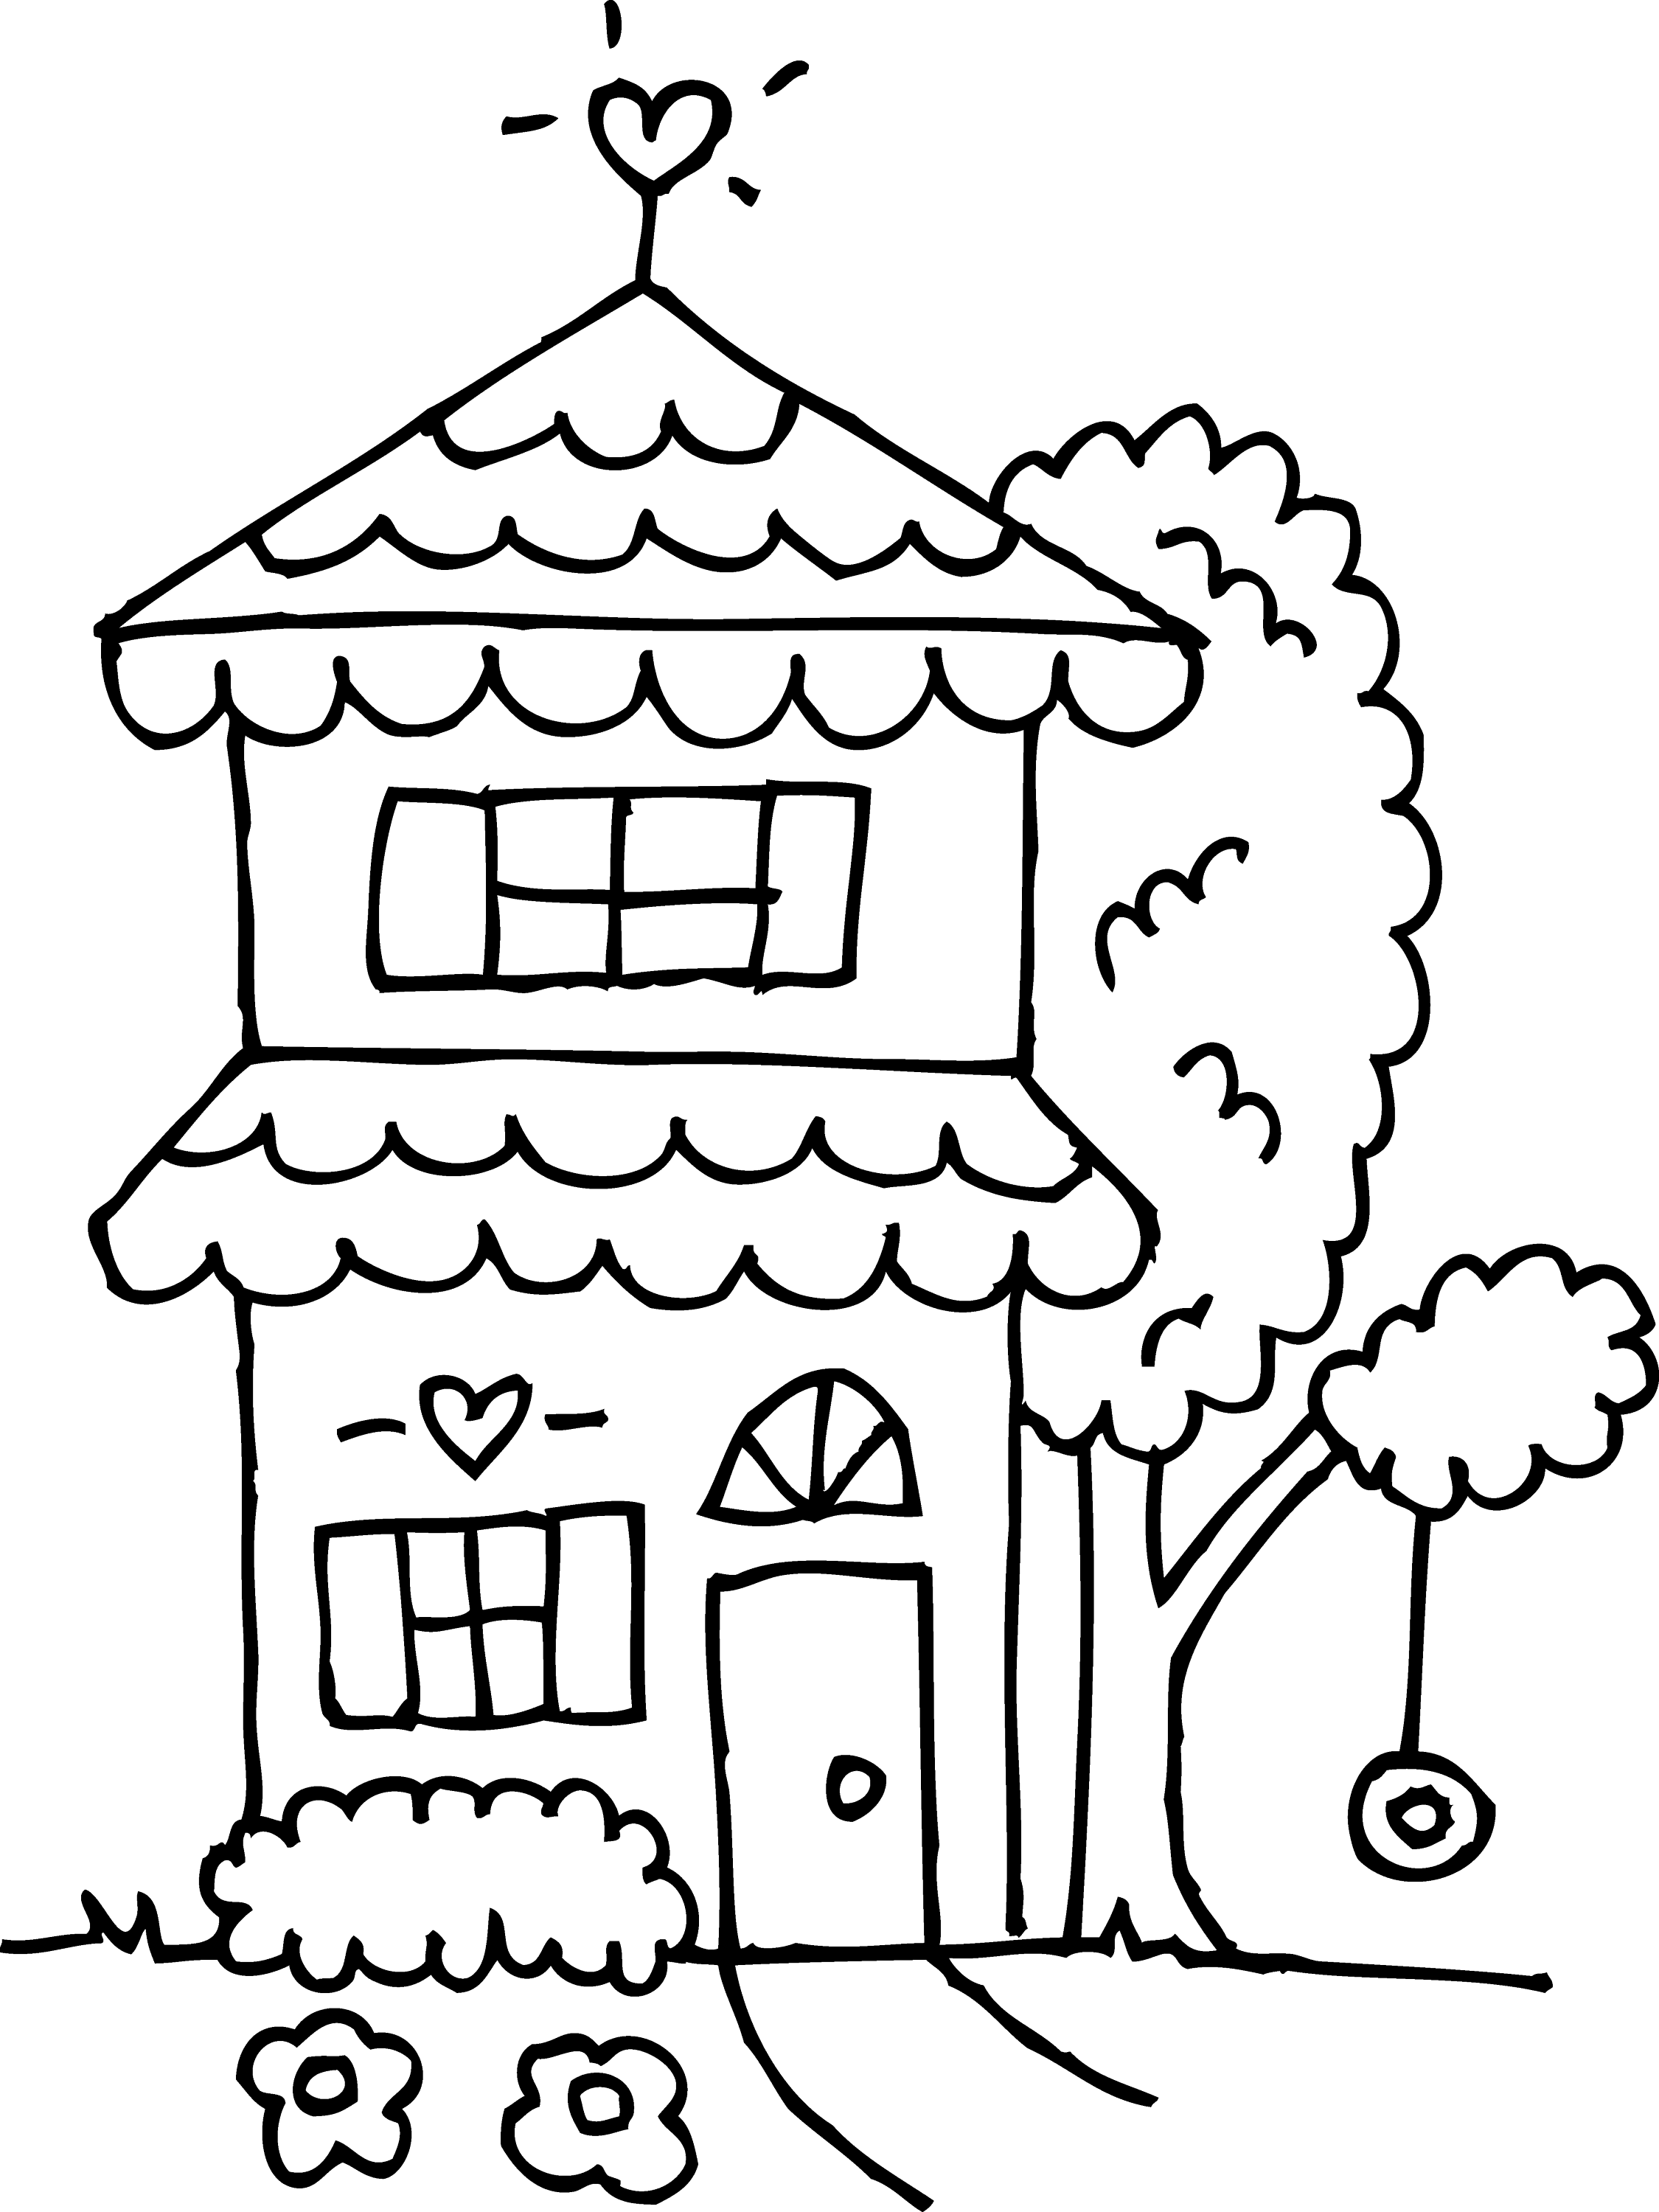 coloring page house free printable house coloring pages for kids coloring page house